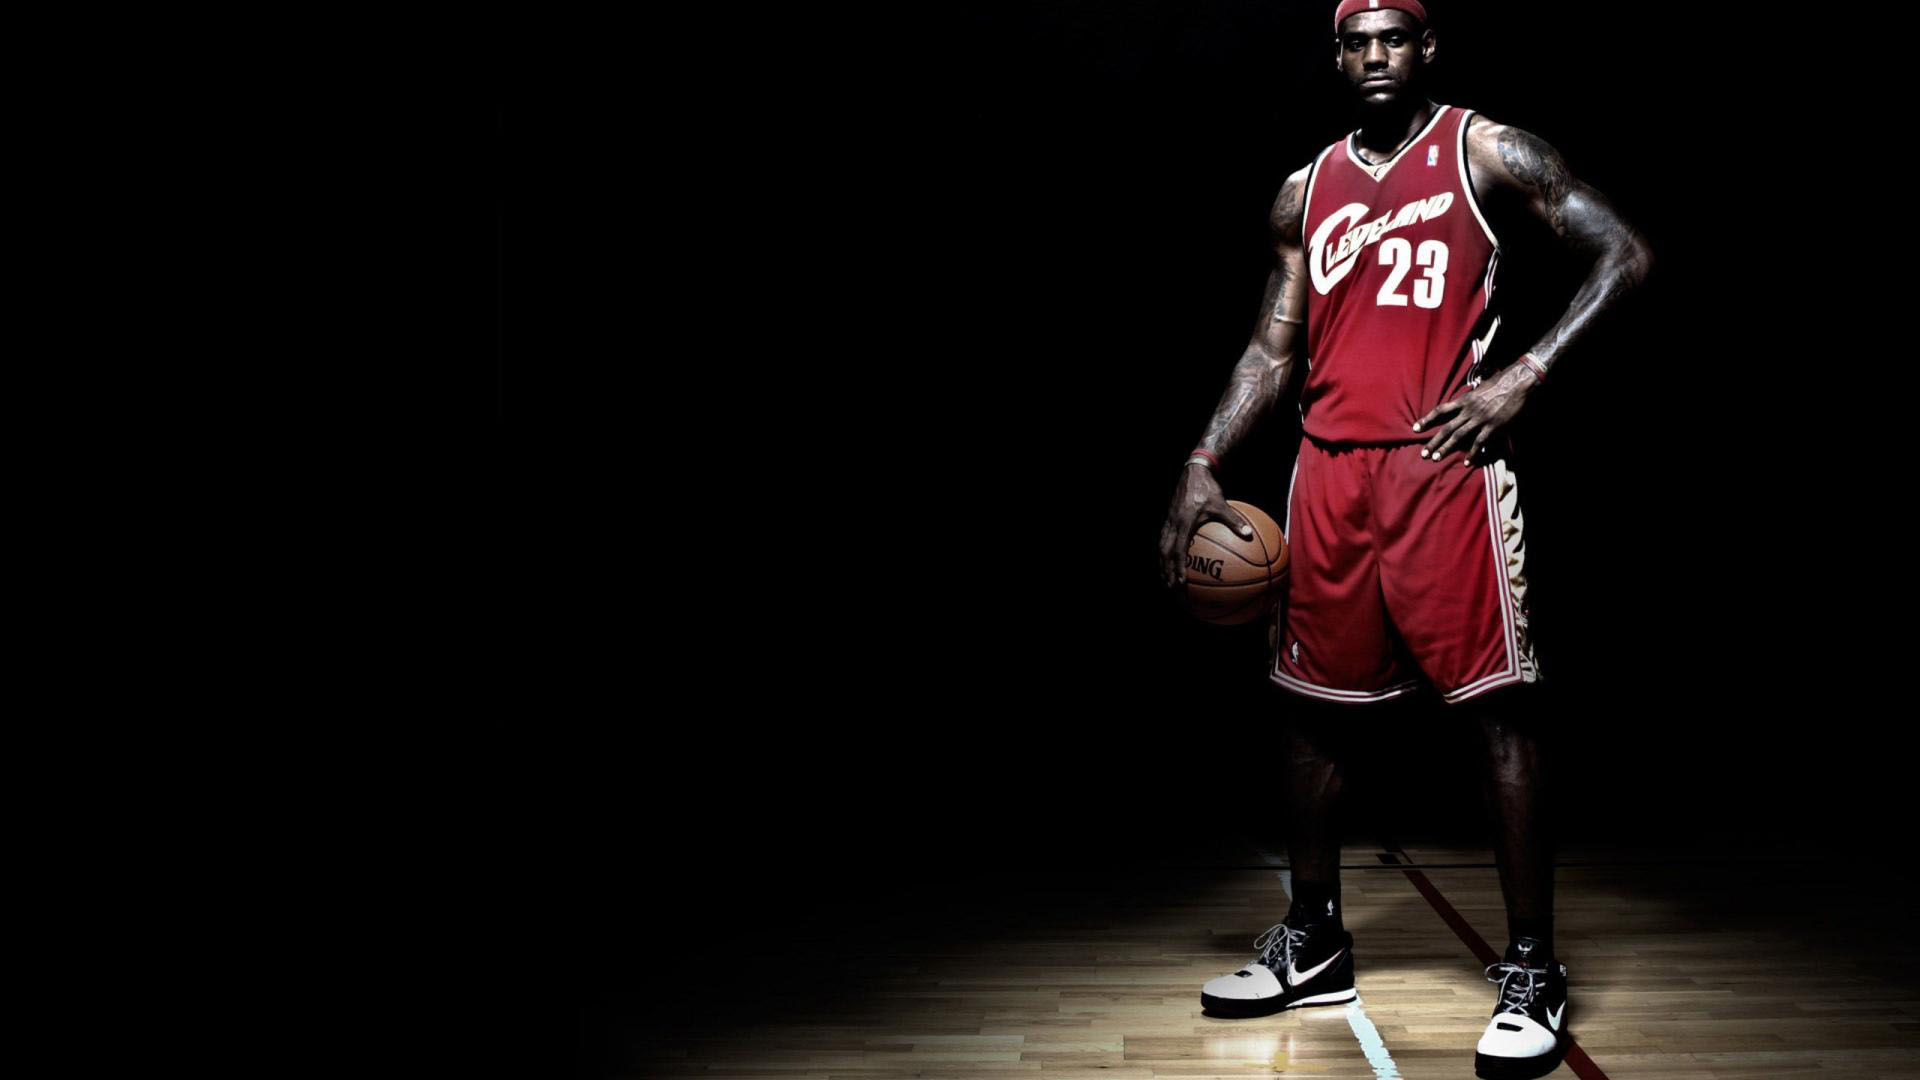 48+ LeBron James wallpapers HD free Download